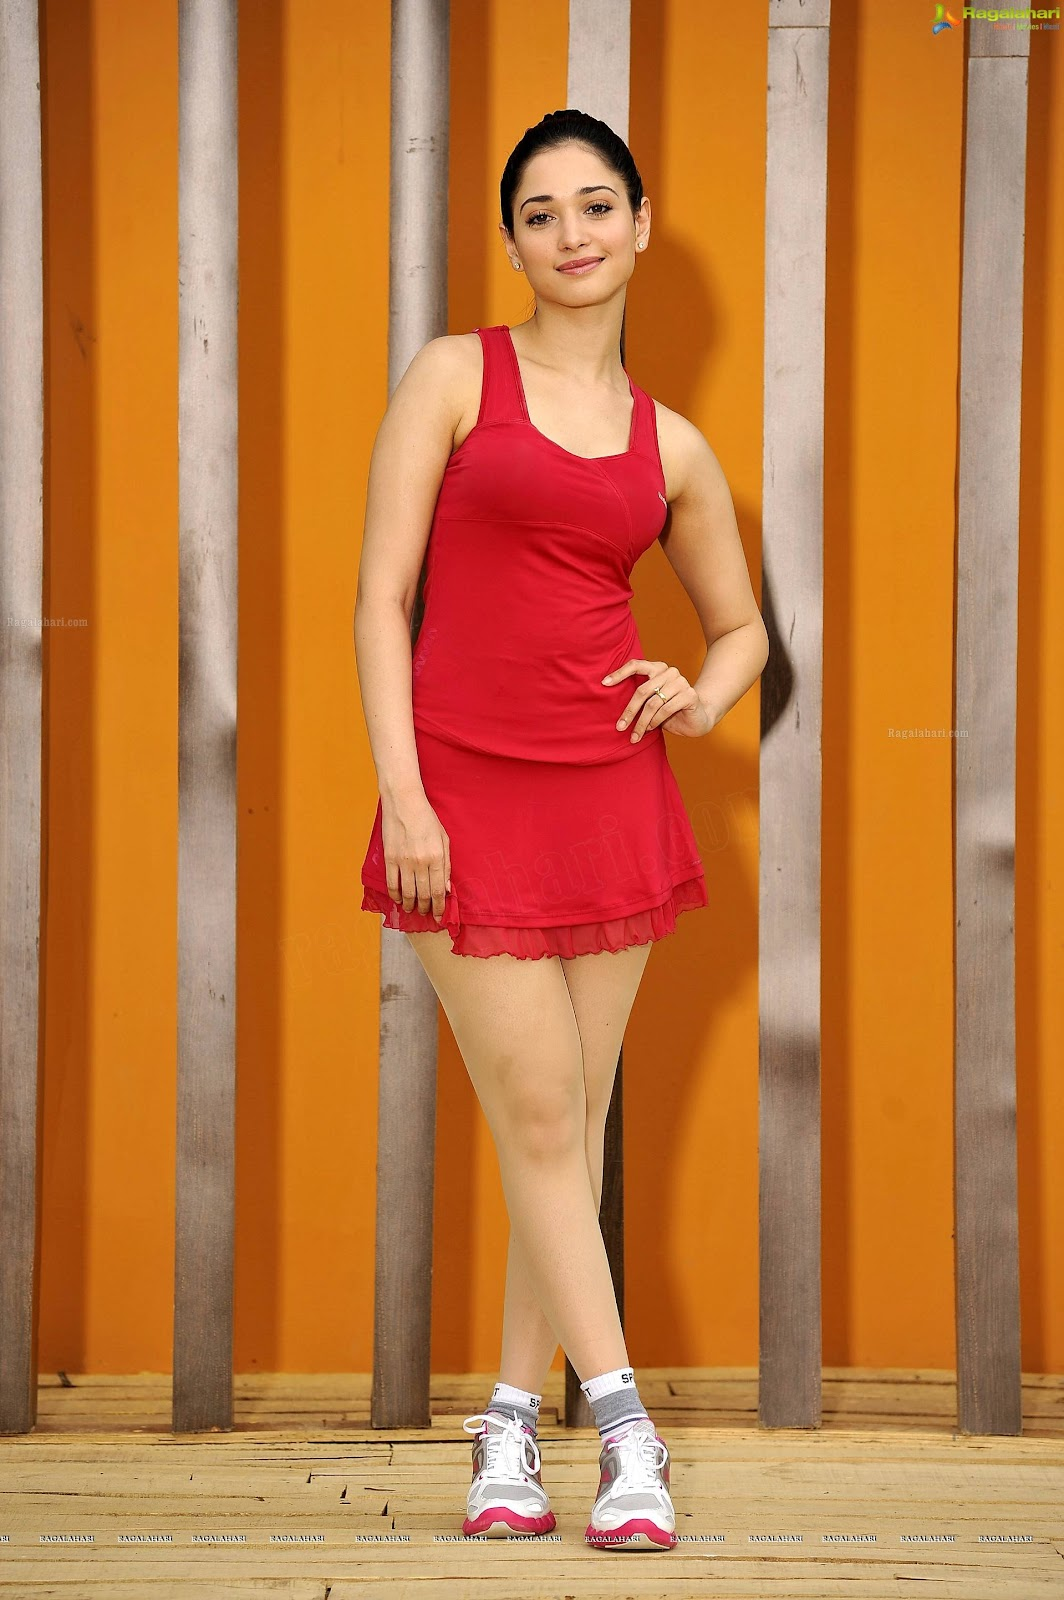 Tamanna Leg Show In Red Short Dress Hd 5 Pics